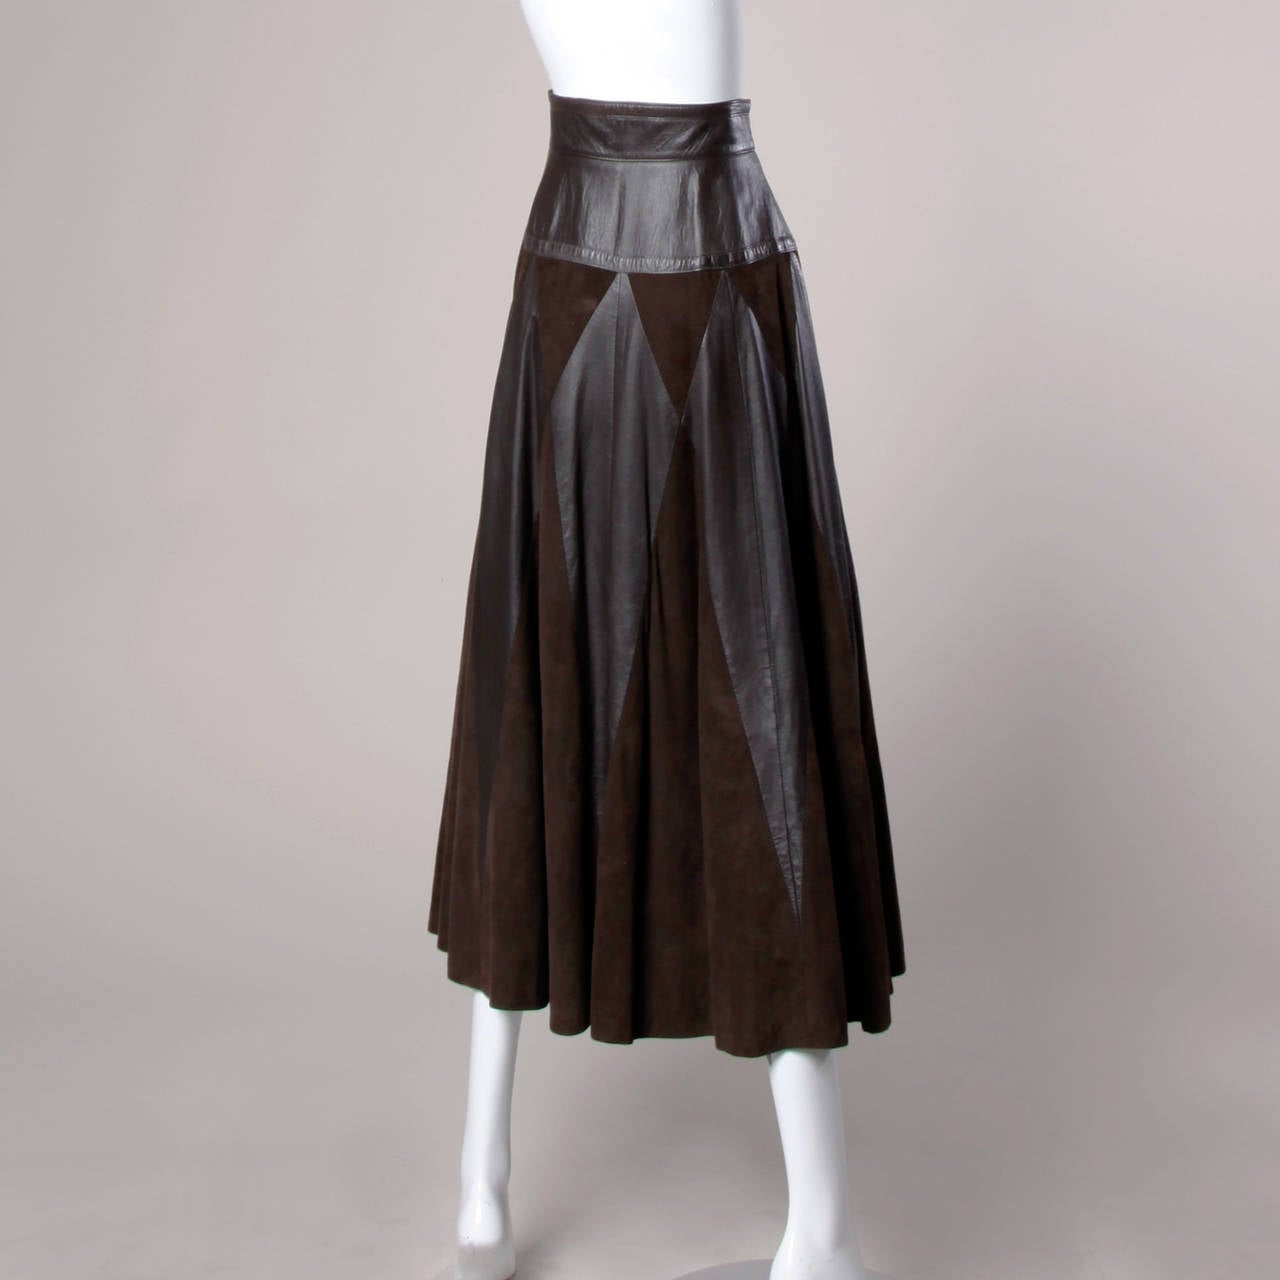 Vintage Soft Buttery Leather + Suede Patchwork Maxi Skirt with a Full Sweep In Excellent Condition For Sale In Sparks, NV